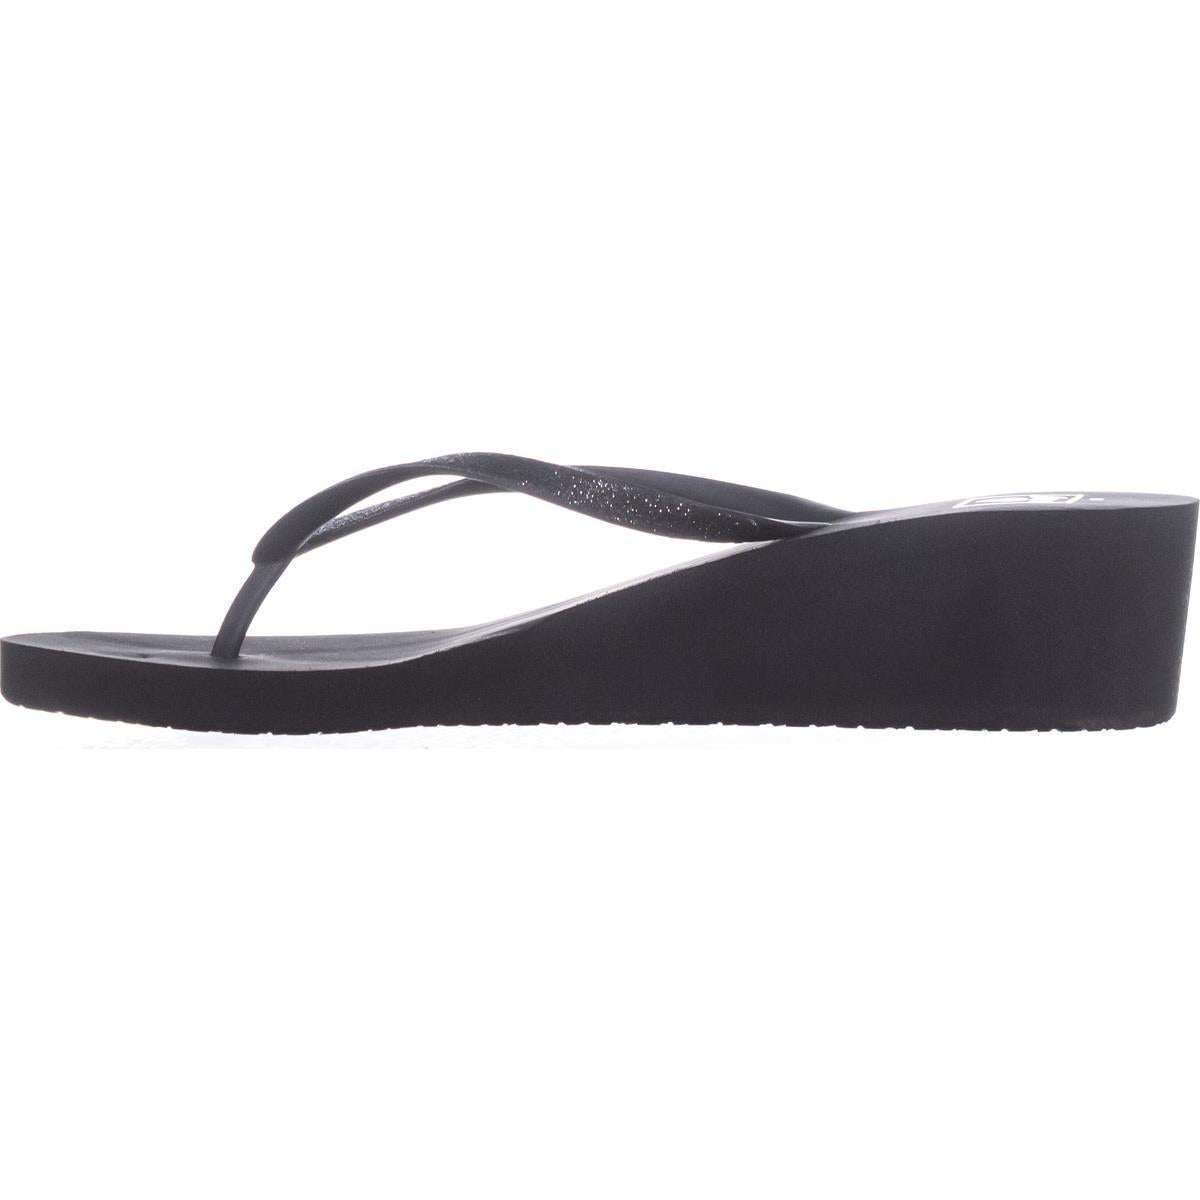 9de896c5ca Shop Reef Krystal Star Wedge Flip Flops, Black/Black - Free Shipping On  Orders Over $45 - Overstock - 21179870